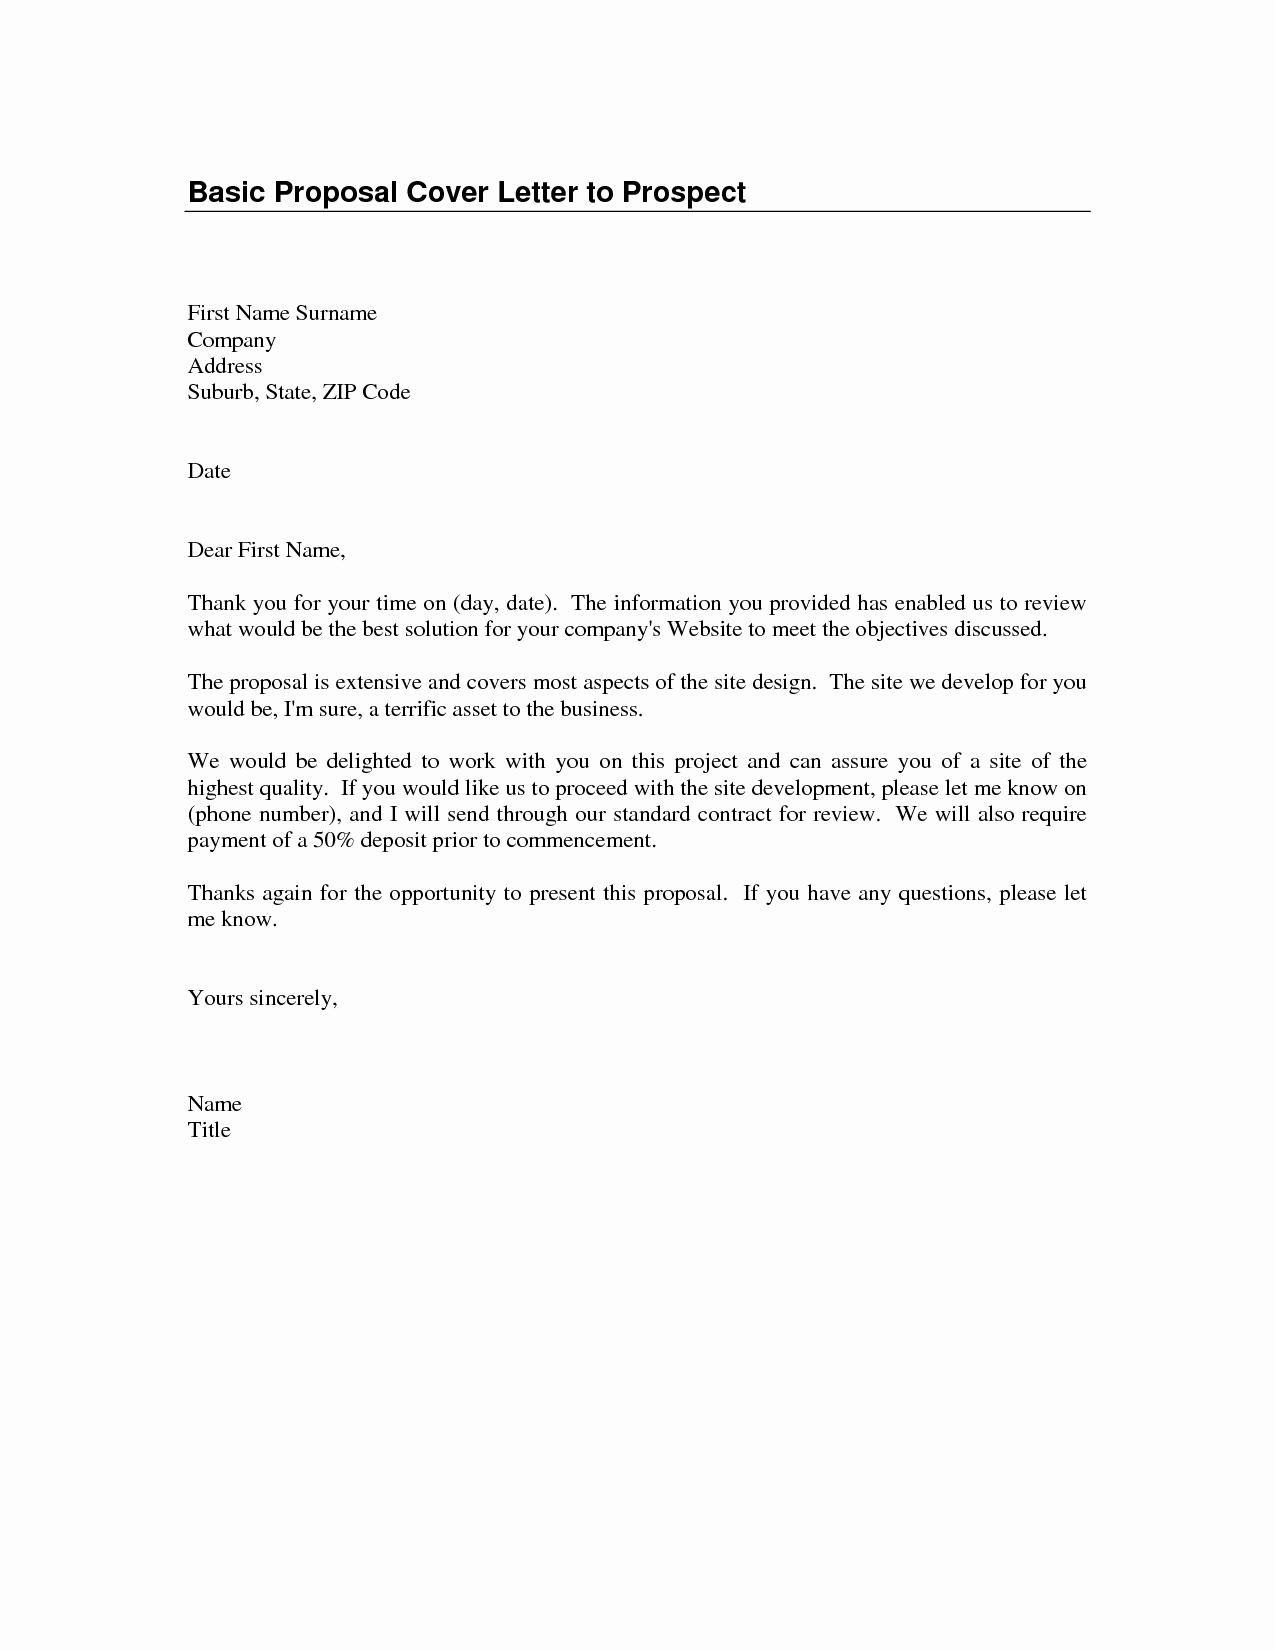 Template Of A Cover Letter Awesome All Cover Letter Samples for Professionals